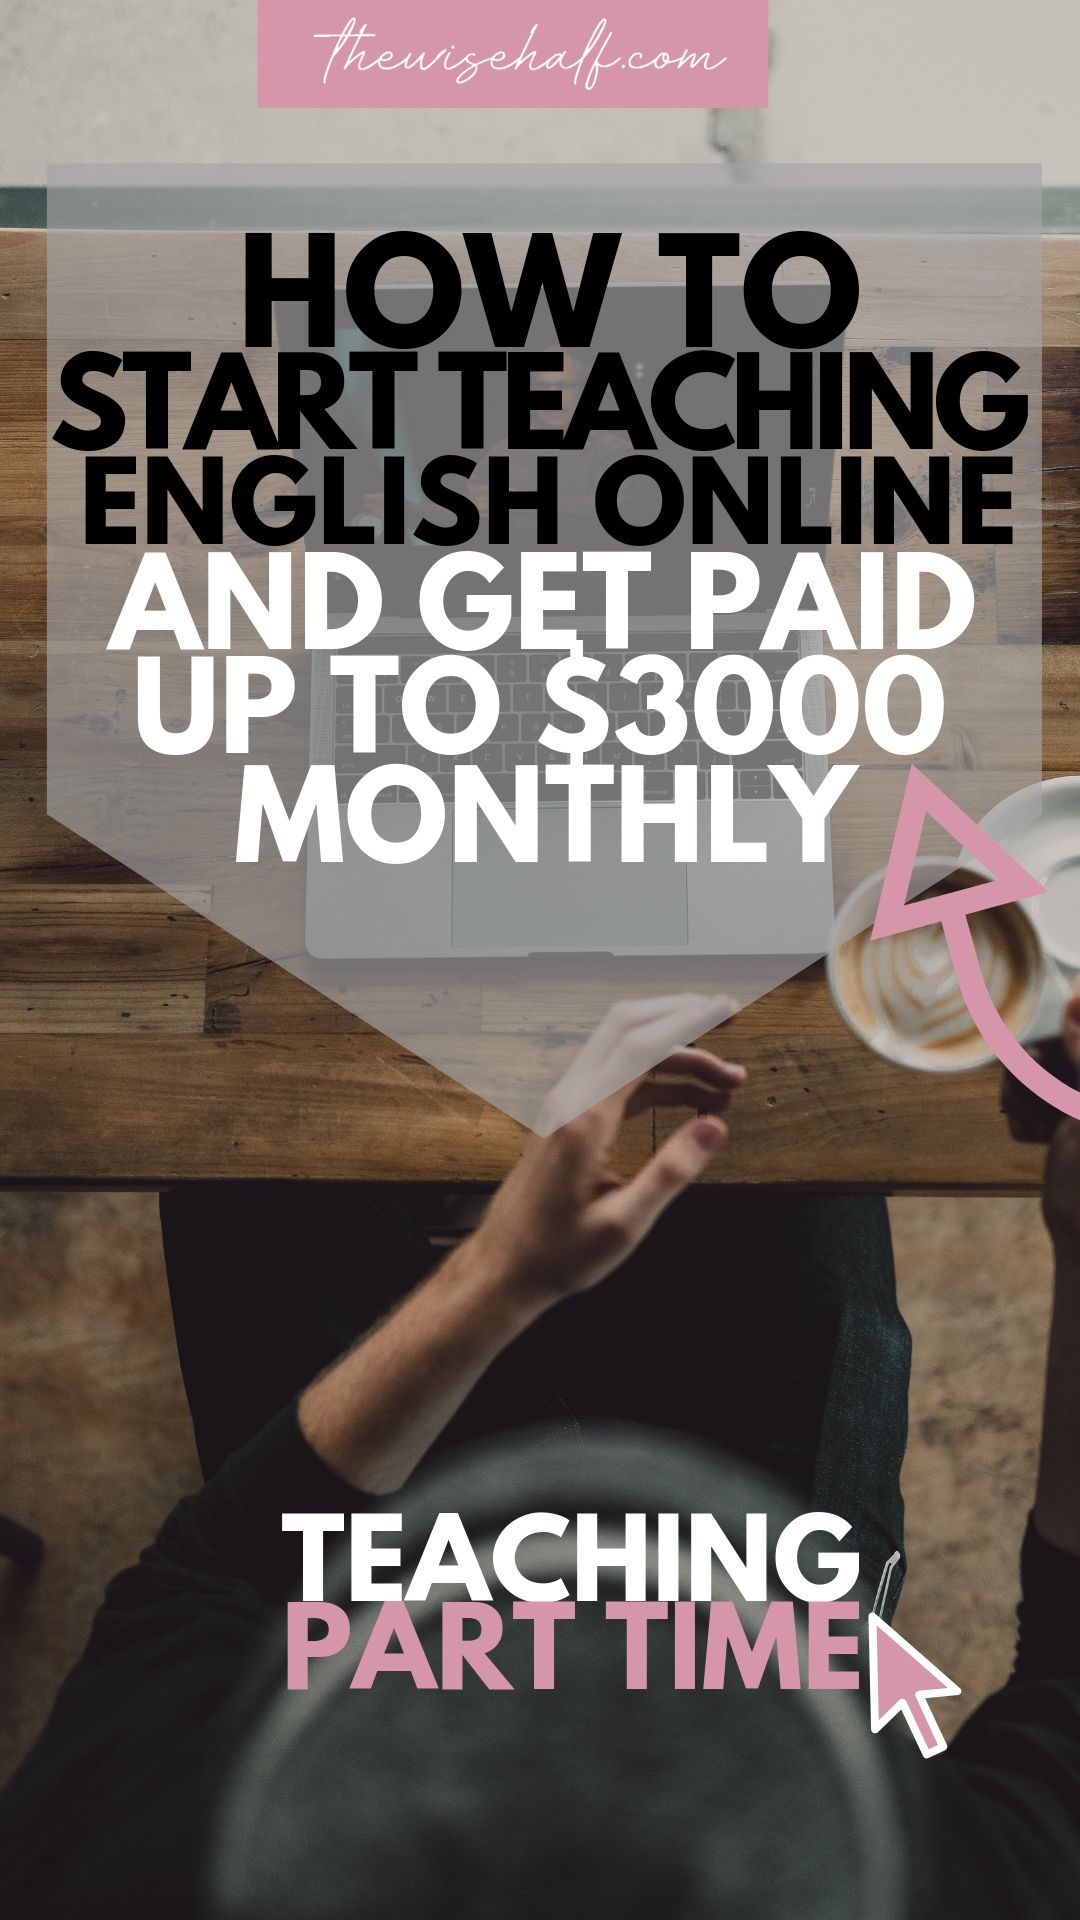 15 Ideal companies to teach English online with or without